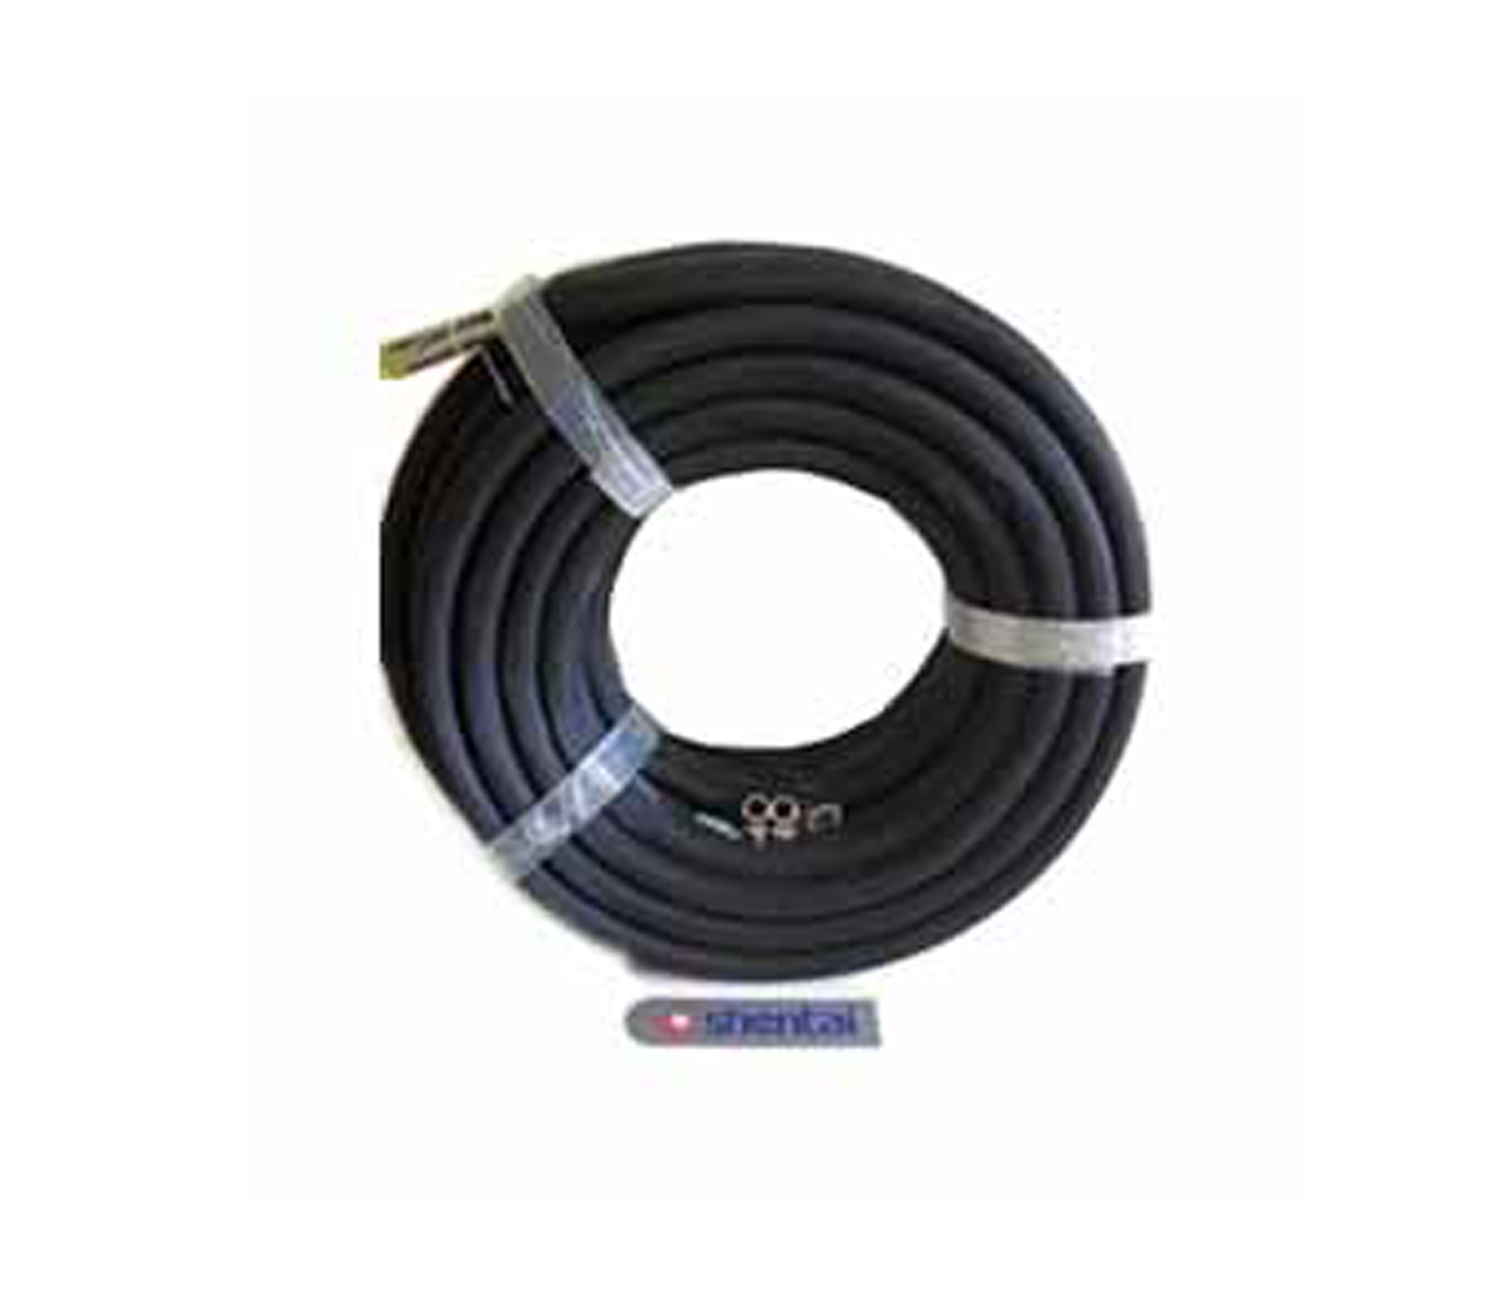 Suntask_10m x DN16_Duo_Flexi_Stainless_Steel_Pipe_Roll.jpg